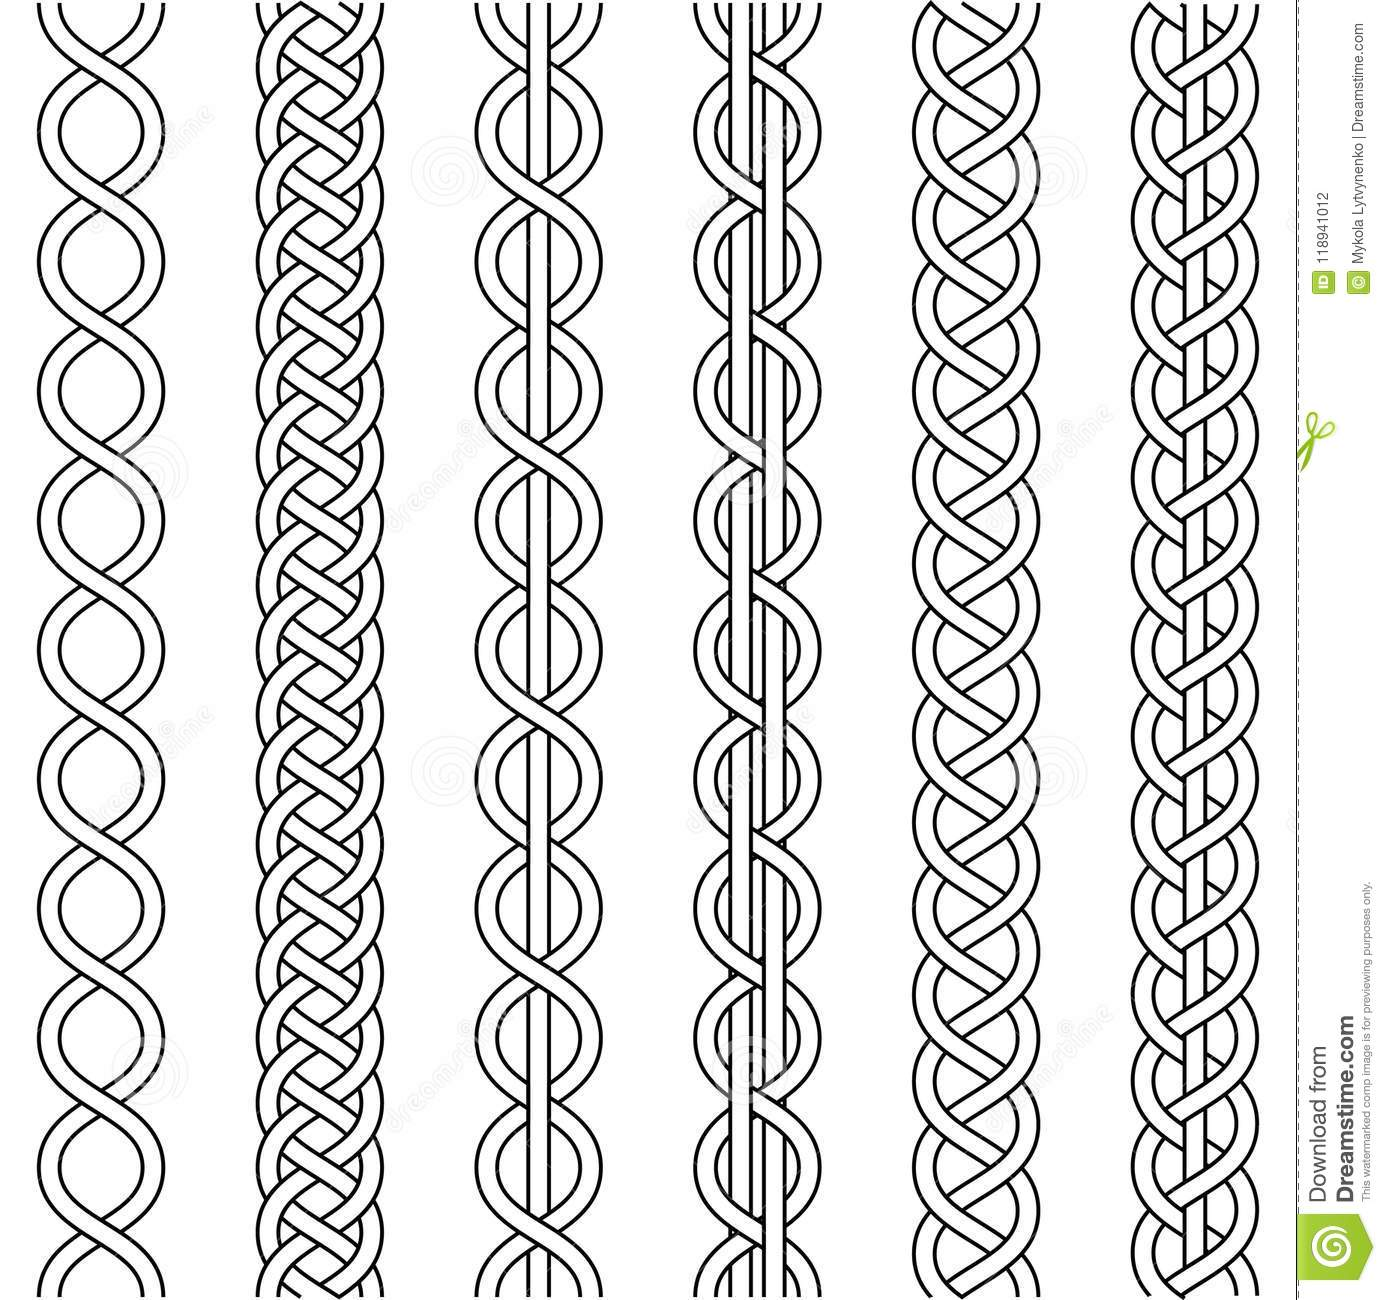 Rope Cable Weaving, Knot Twisted Braid, Macrame Crochet Weaving ...